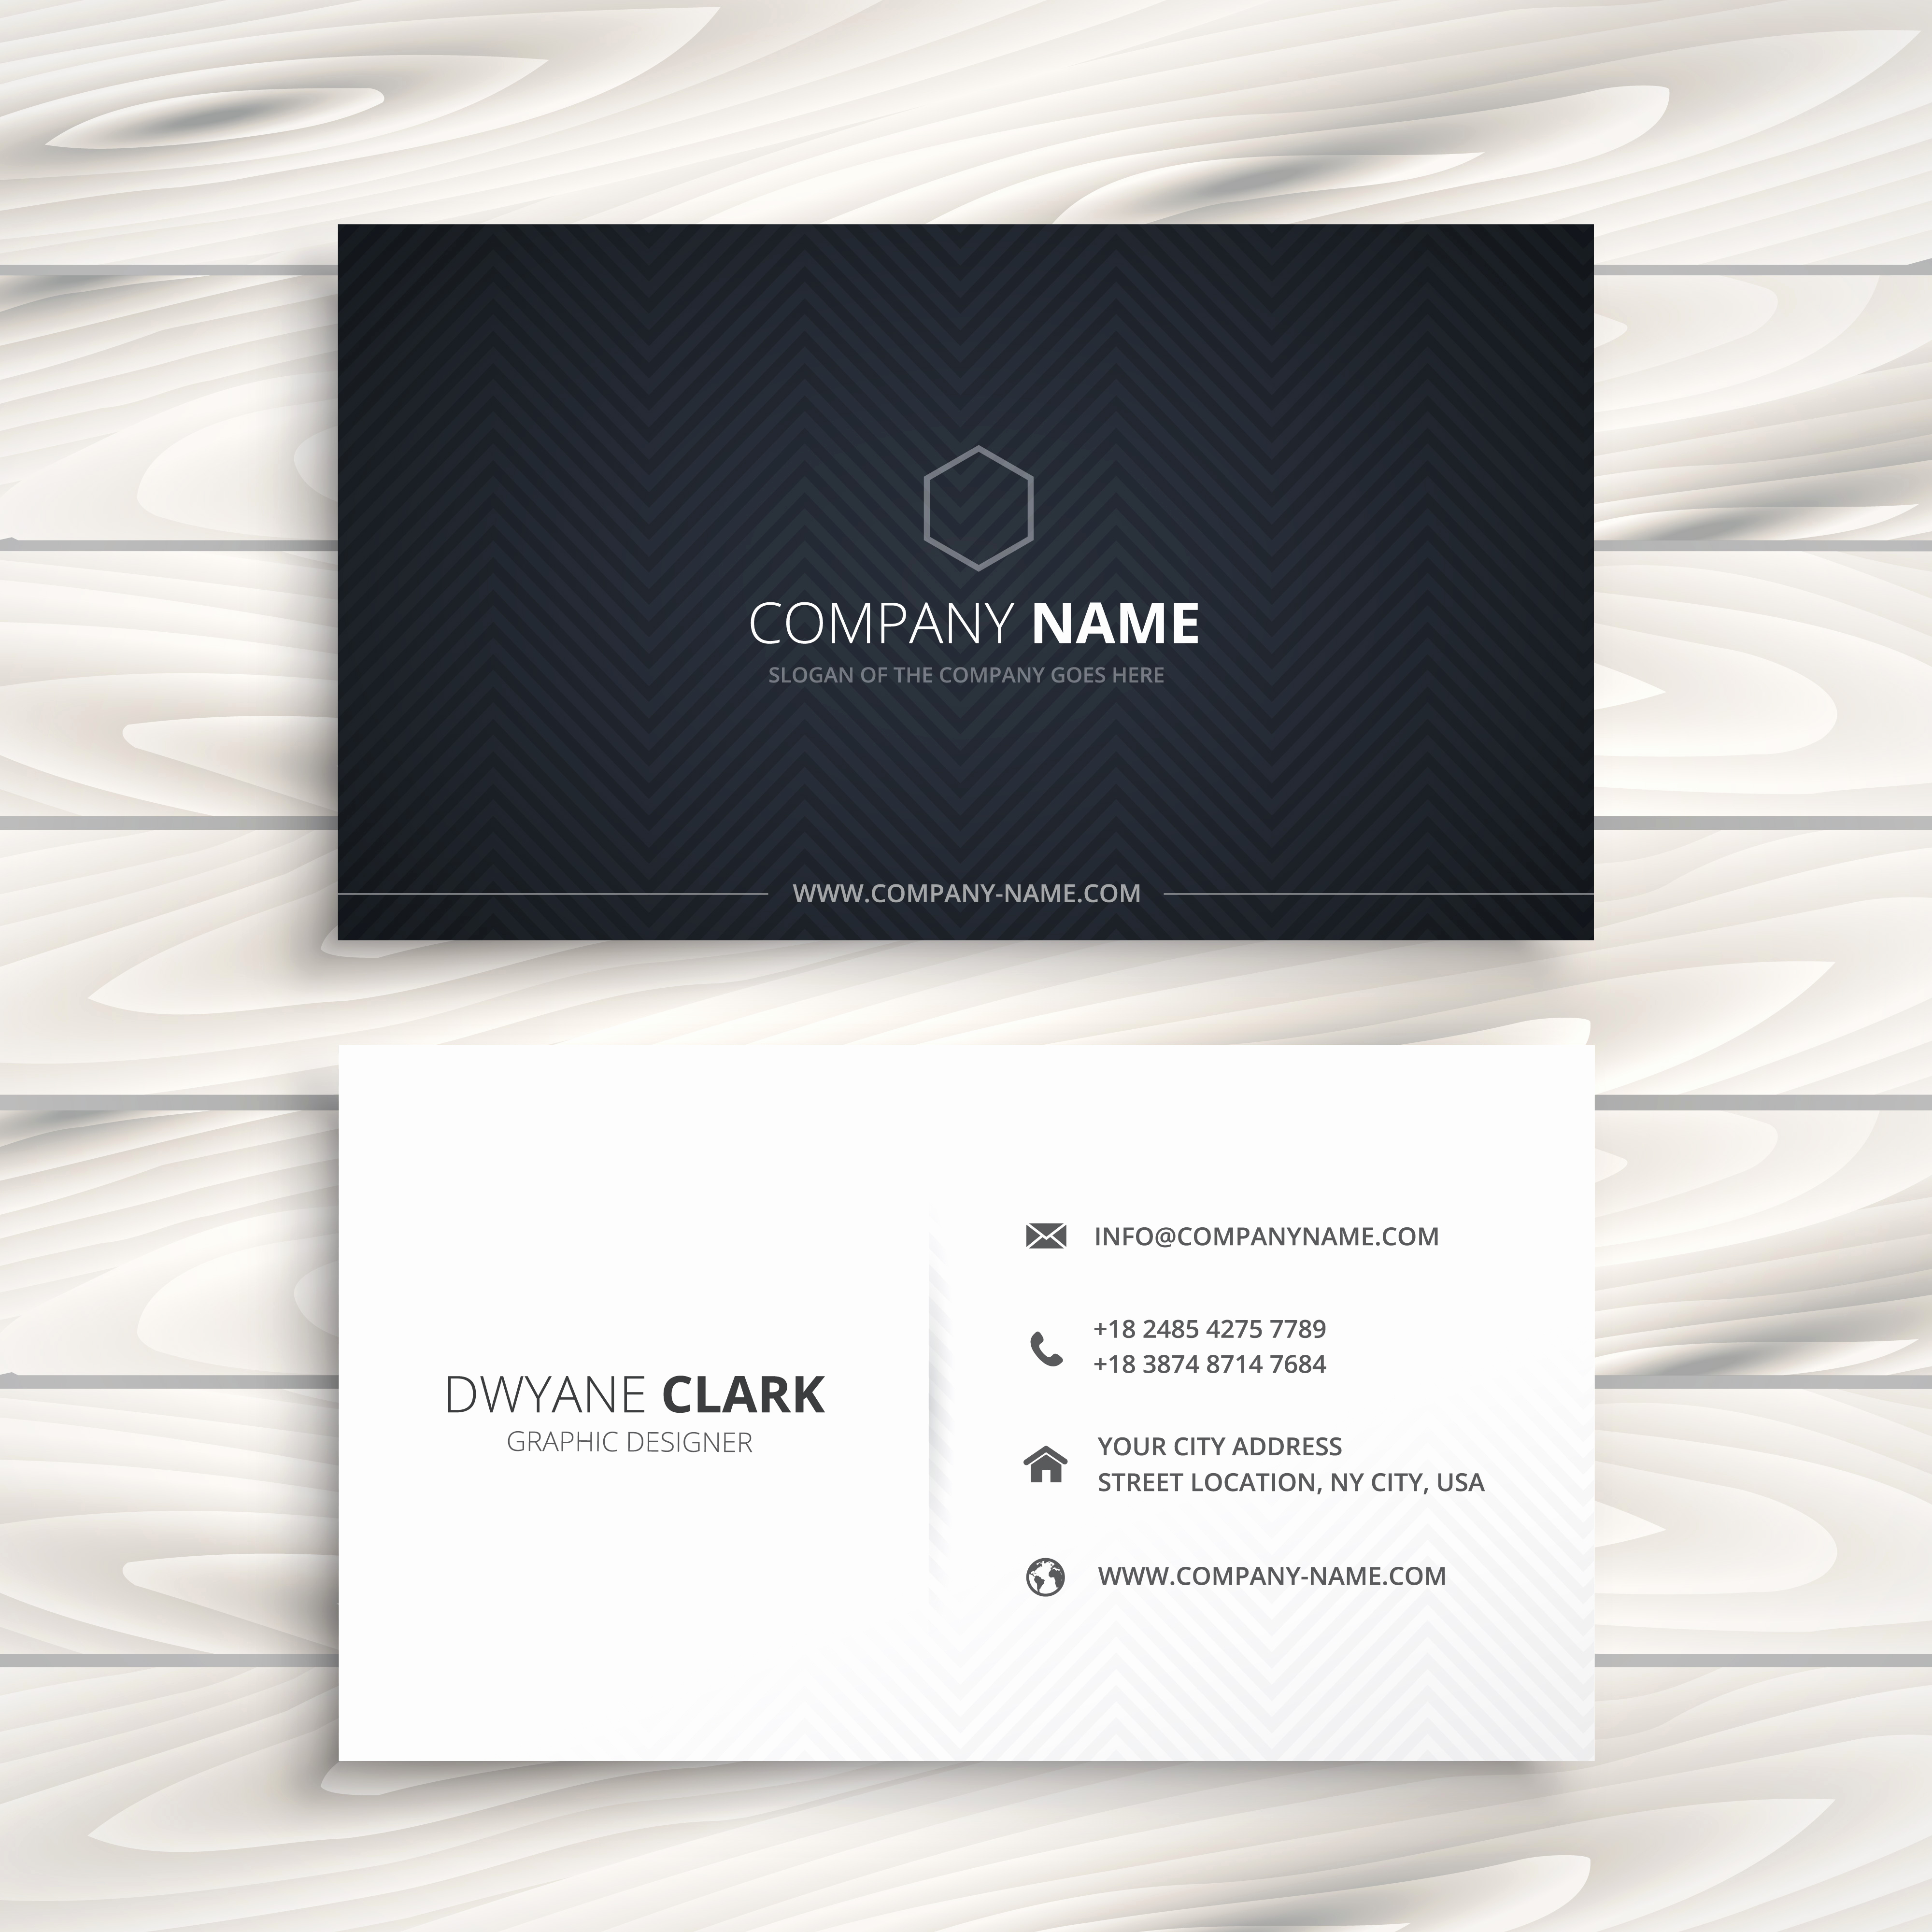 Simple Business Card Design Unique Simple Business Card In Black and White Style Vector